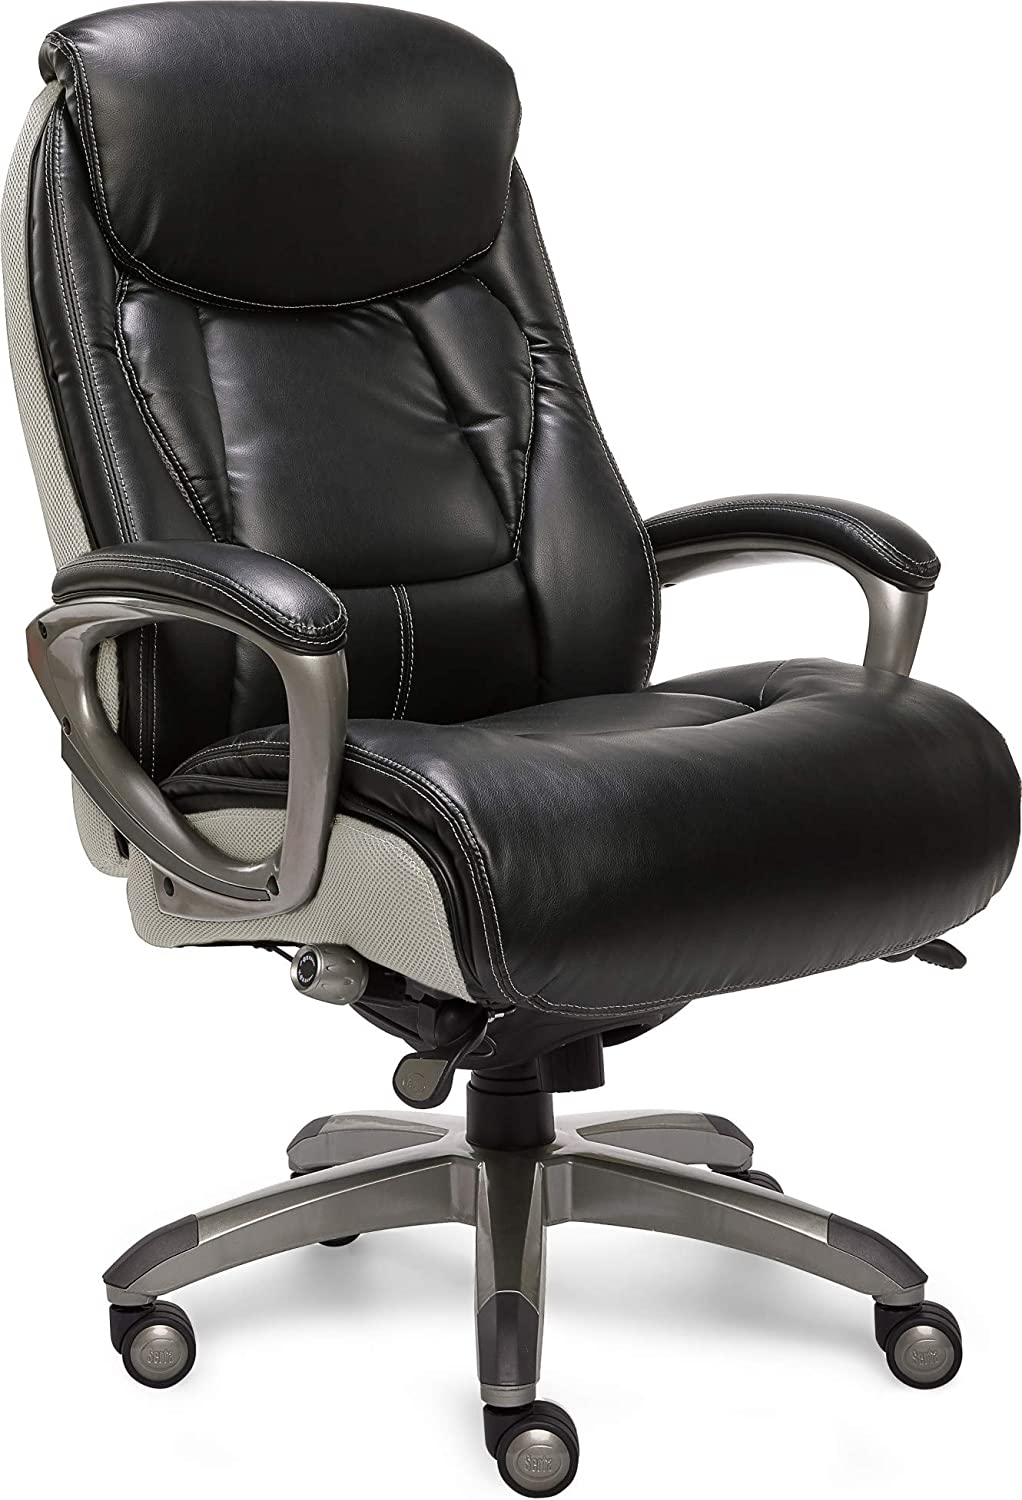 Serta Smart Layers Executive Tranquility Office Chair